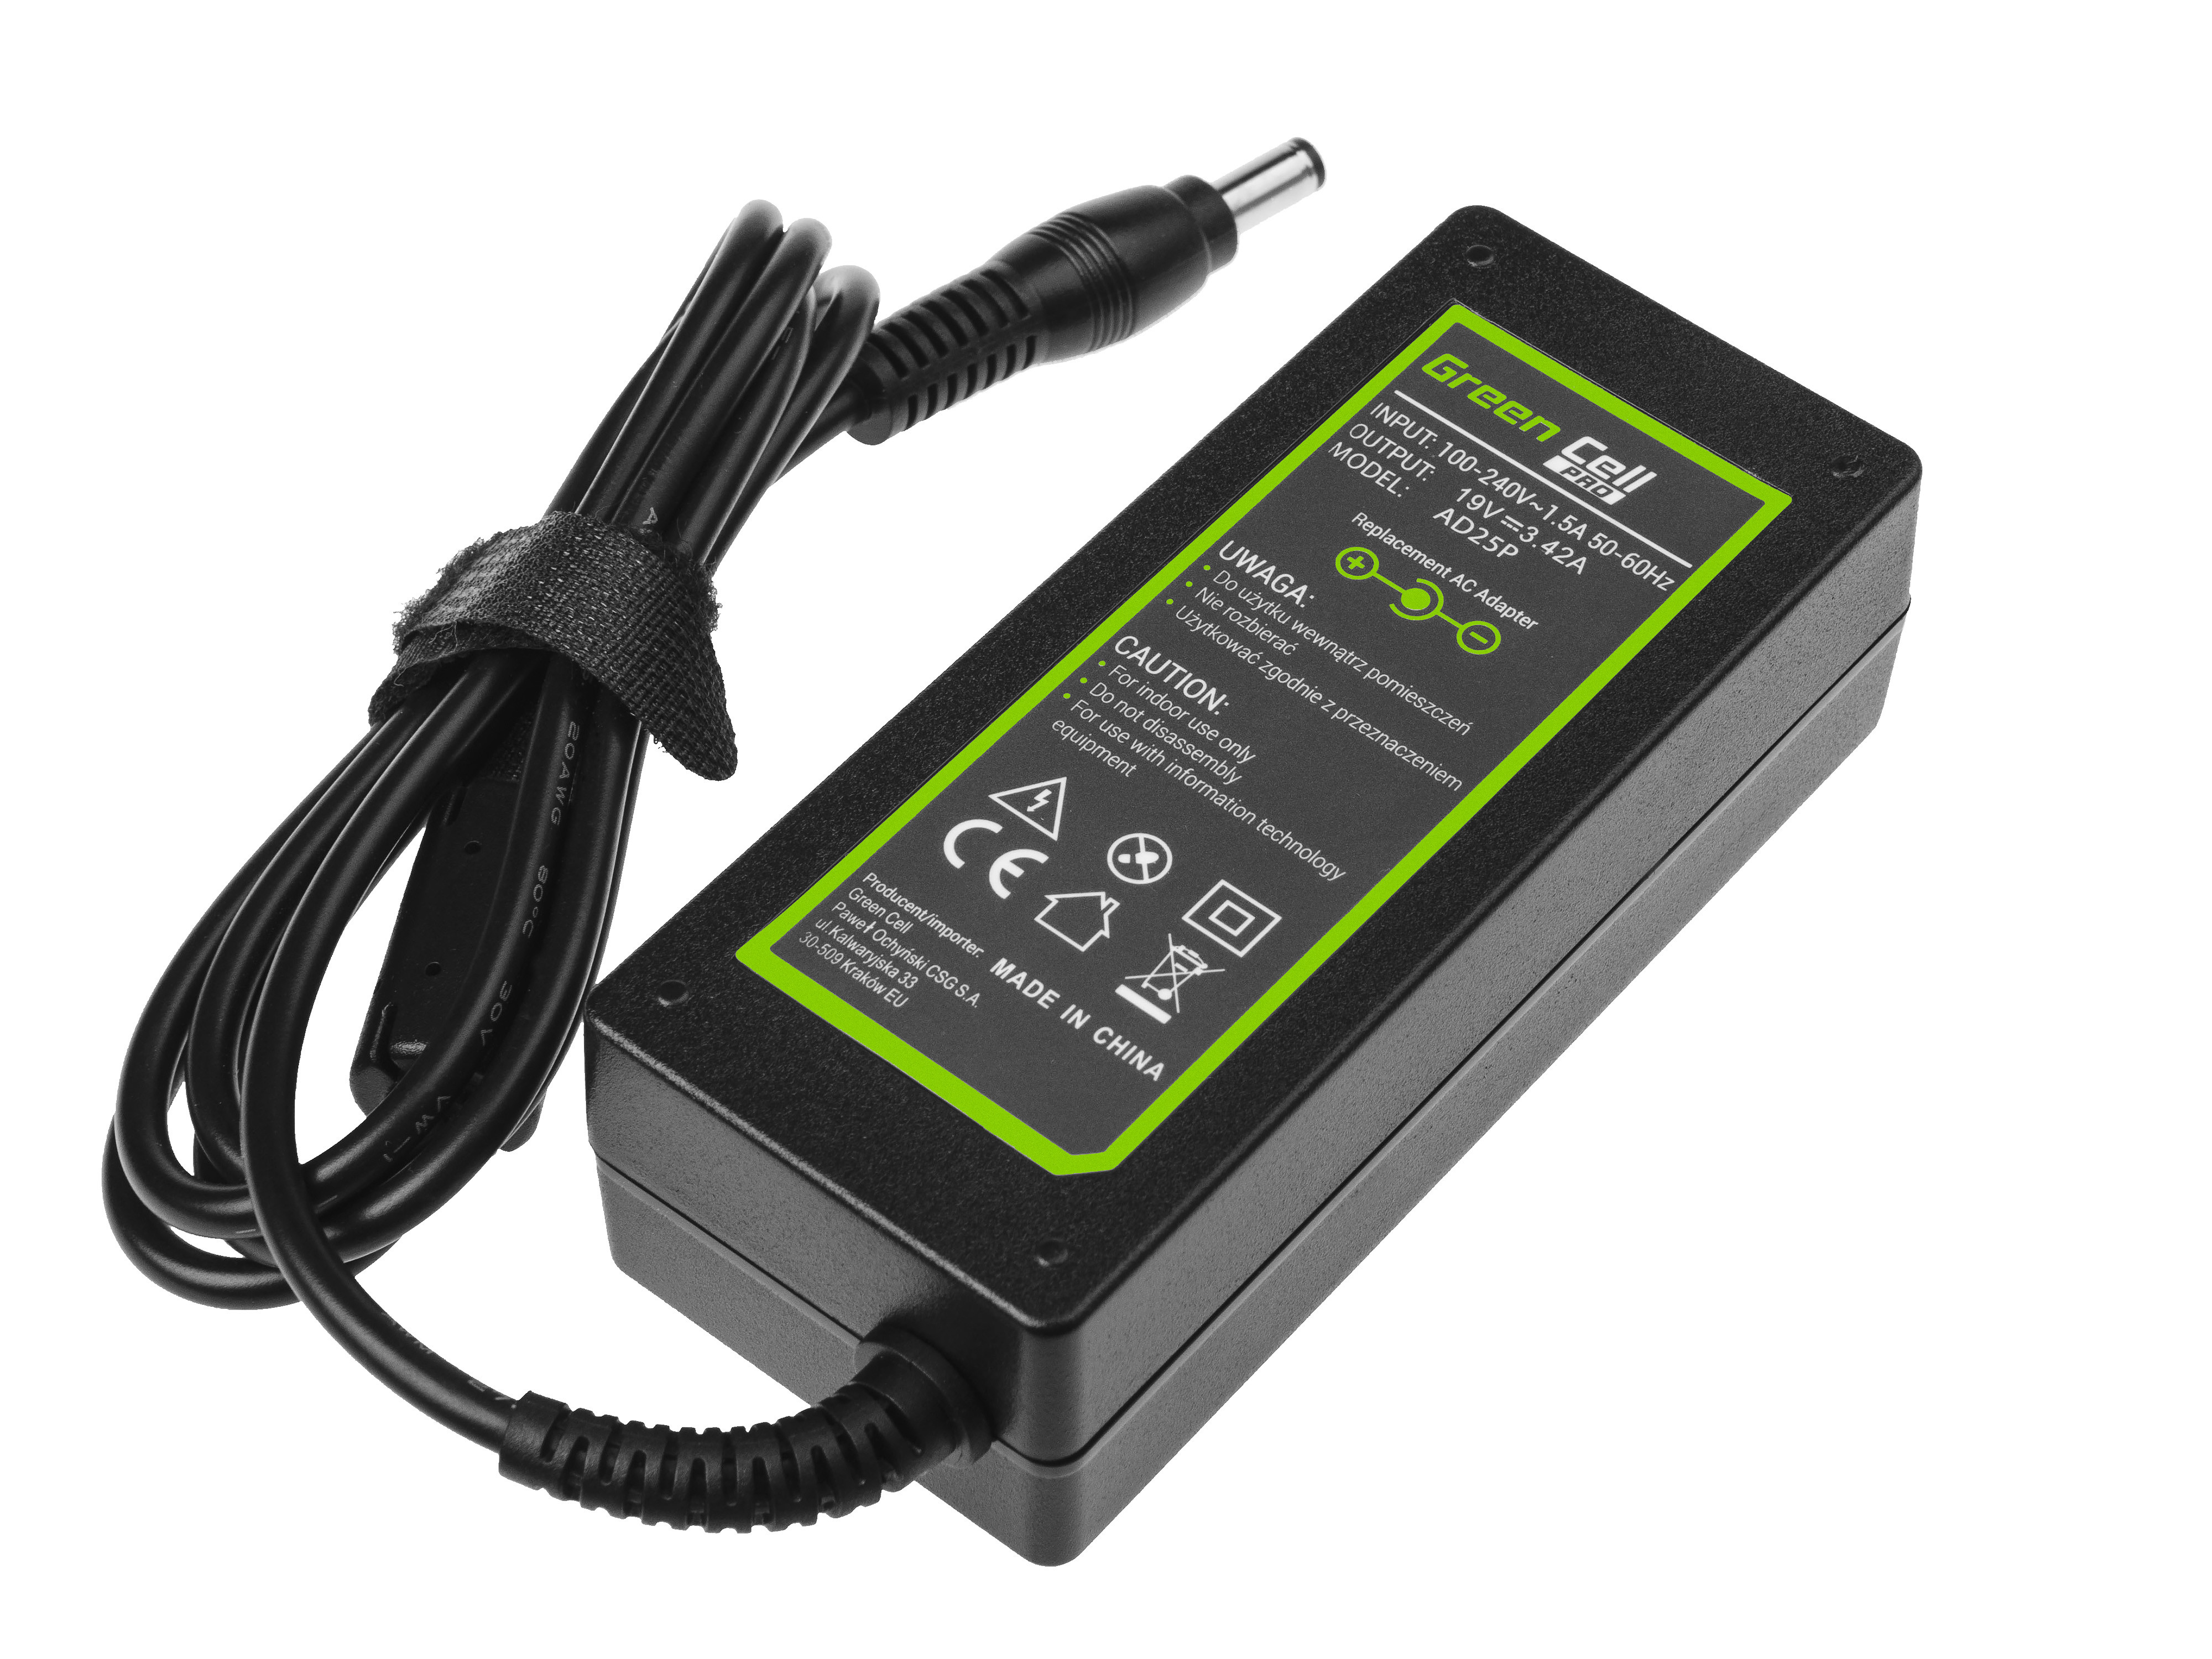 Charger / AC Adapter Green Cell PRO 19V 3.95A 75W for Toshiba Satellite C55 C660 C850 C855 C870 L650 L650D L655 L750 L750D L755